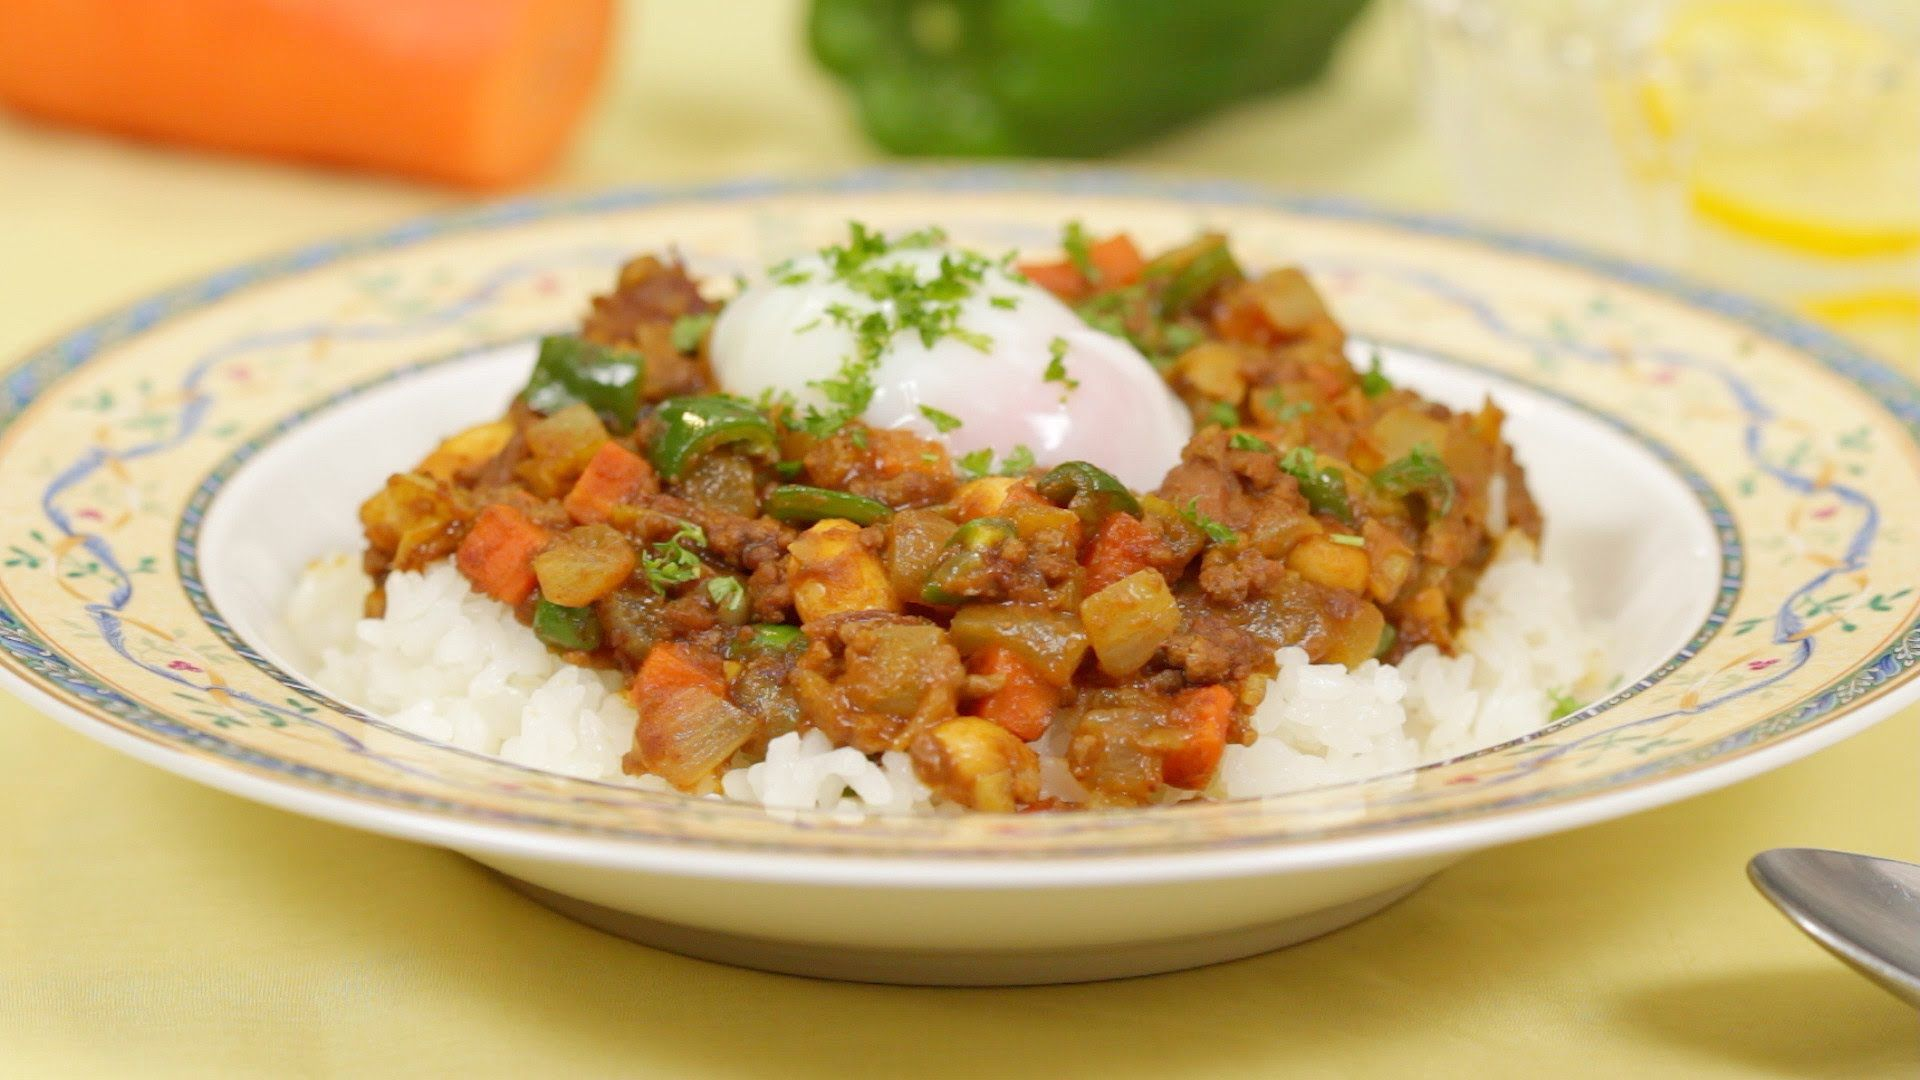 How To Make Japanese Style Dry Curry With Beans 豆入りドライカレー 作り方 レシピ Curry Recipes Vegetable Recipes Dry Curry Recipe